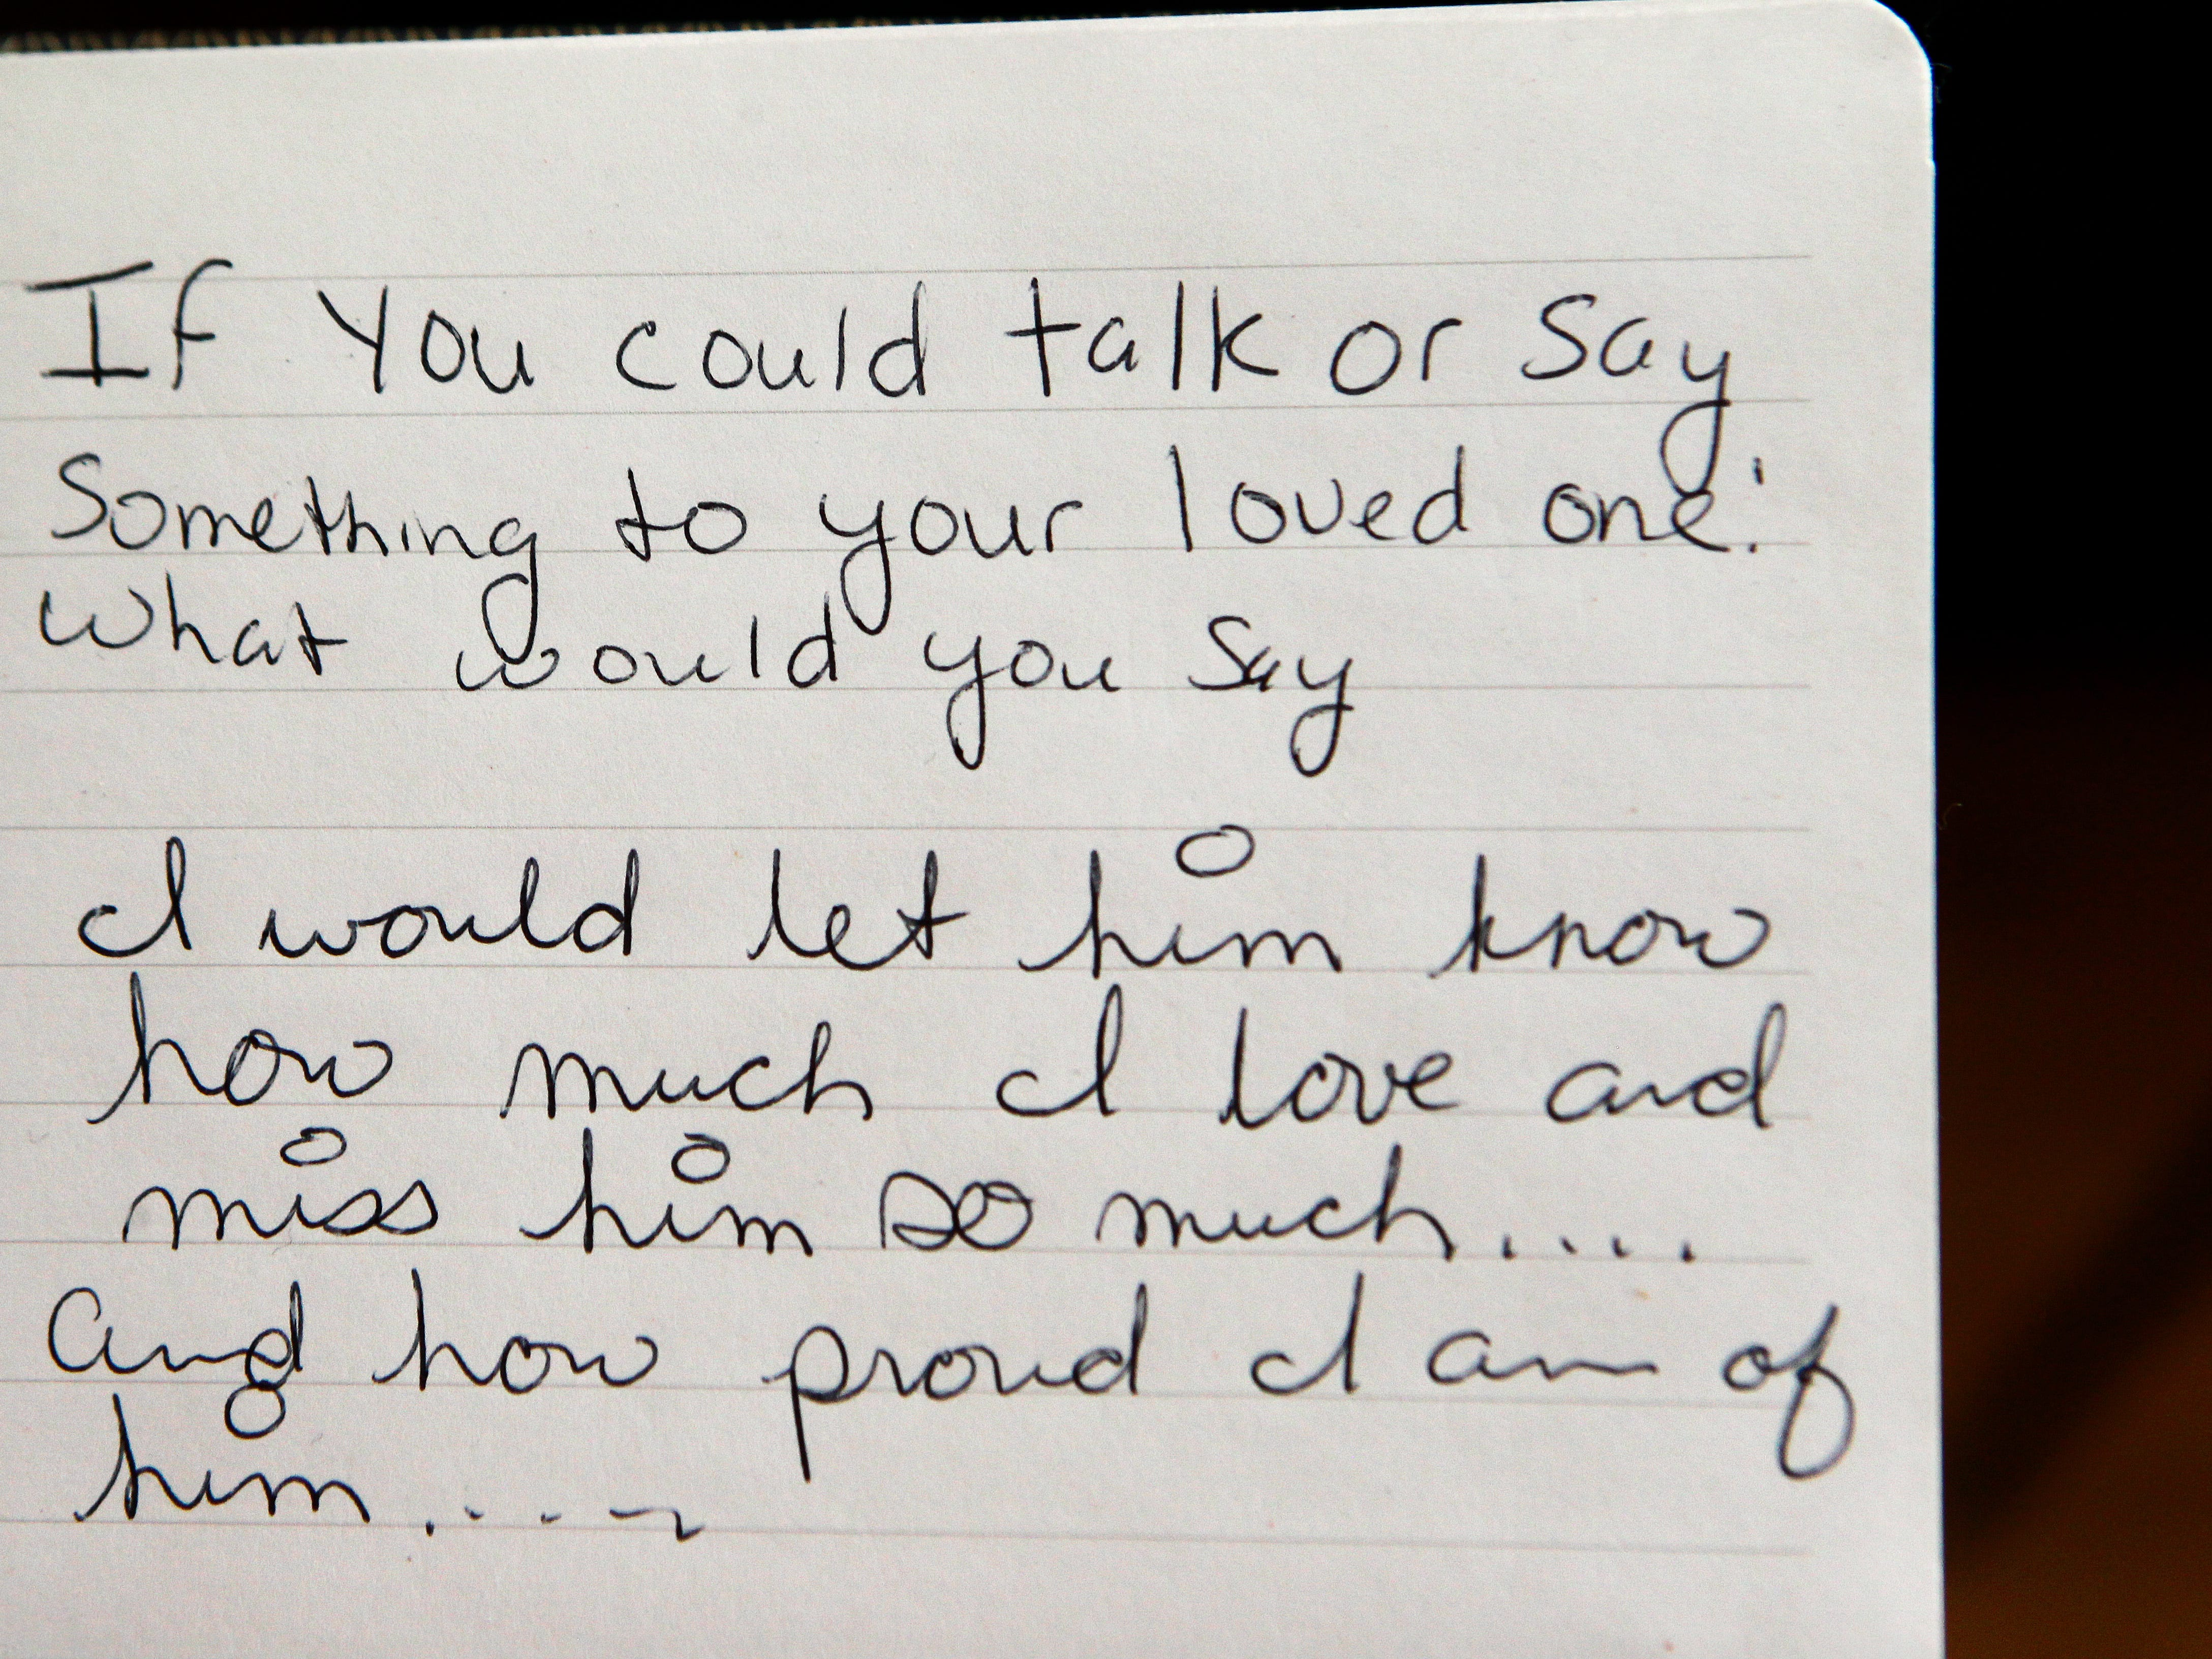 In one journal, Tanja Dixon answered a question from her grief support session: If you could talk or say something to your loved one, what would you say?